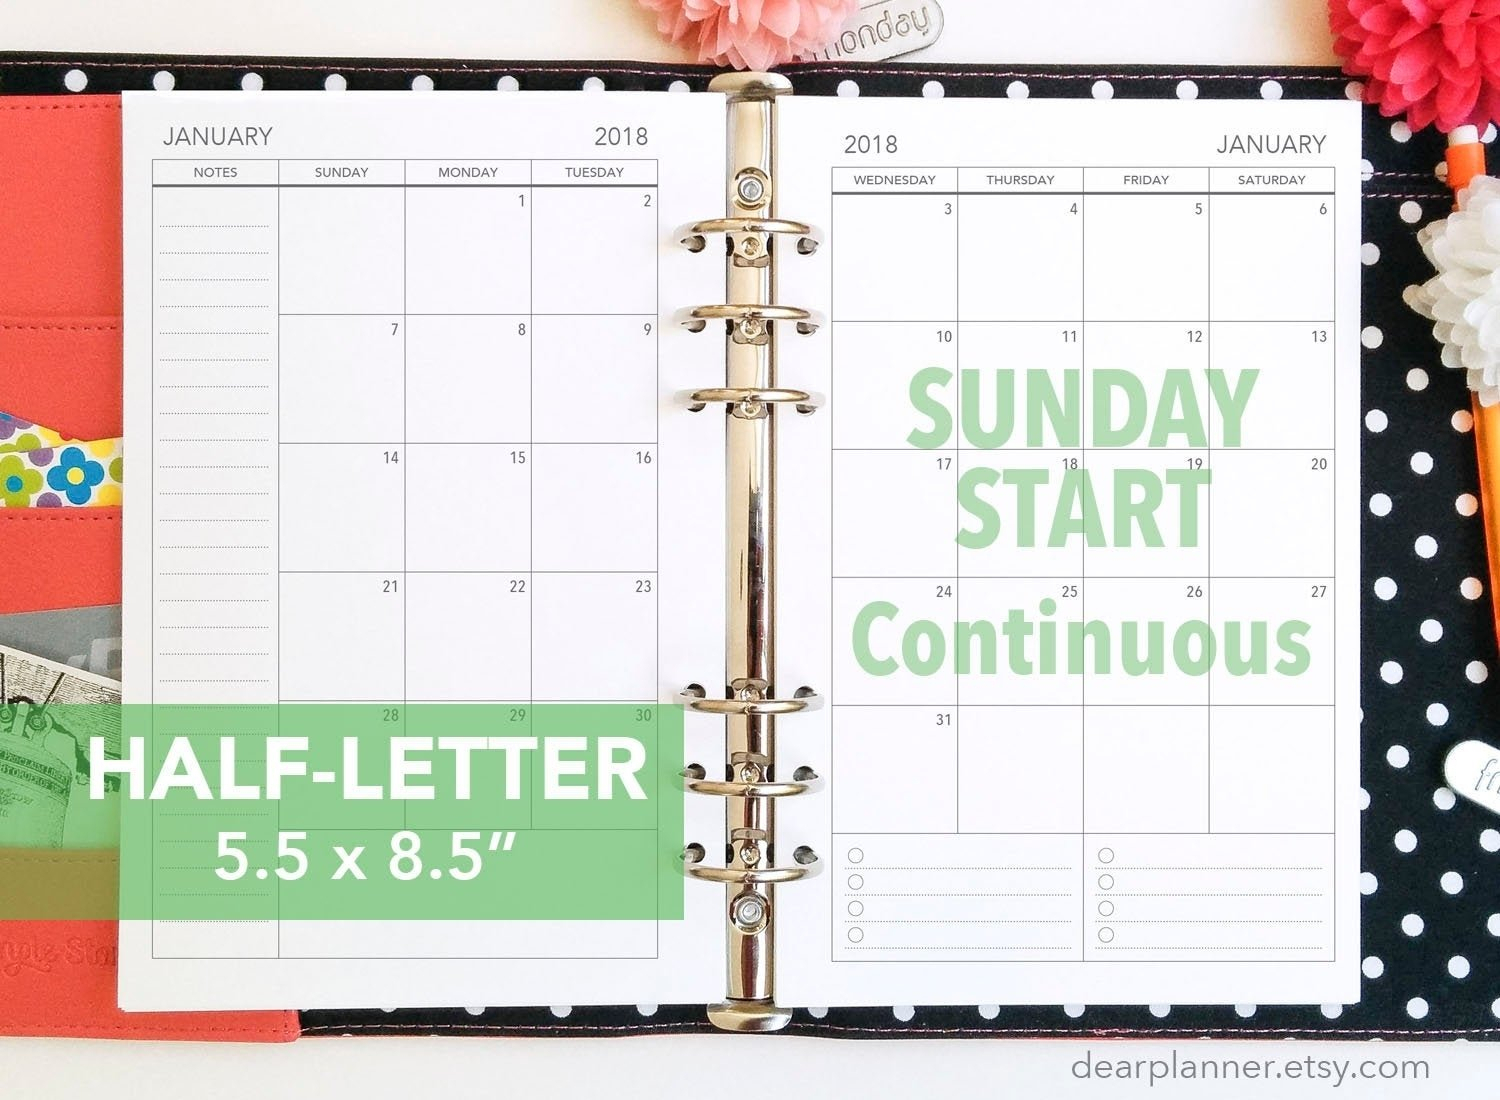 Show Me Monthly Calendars With Agenda Pages That Are 5.5X8.5 :-Free Calendar Template